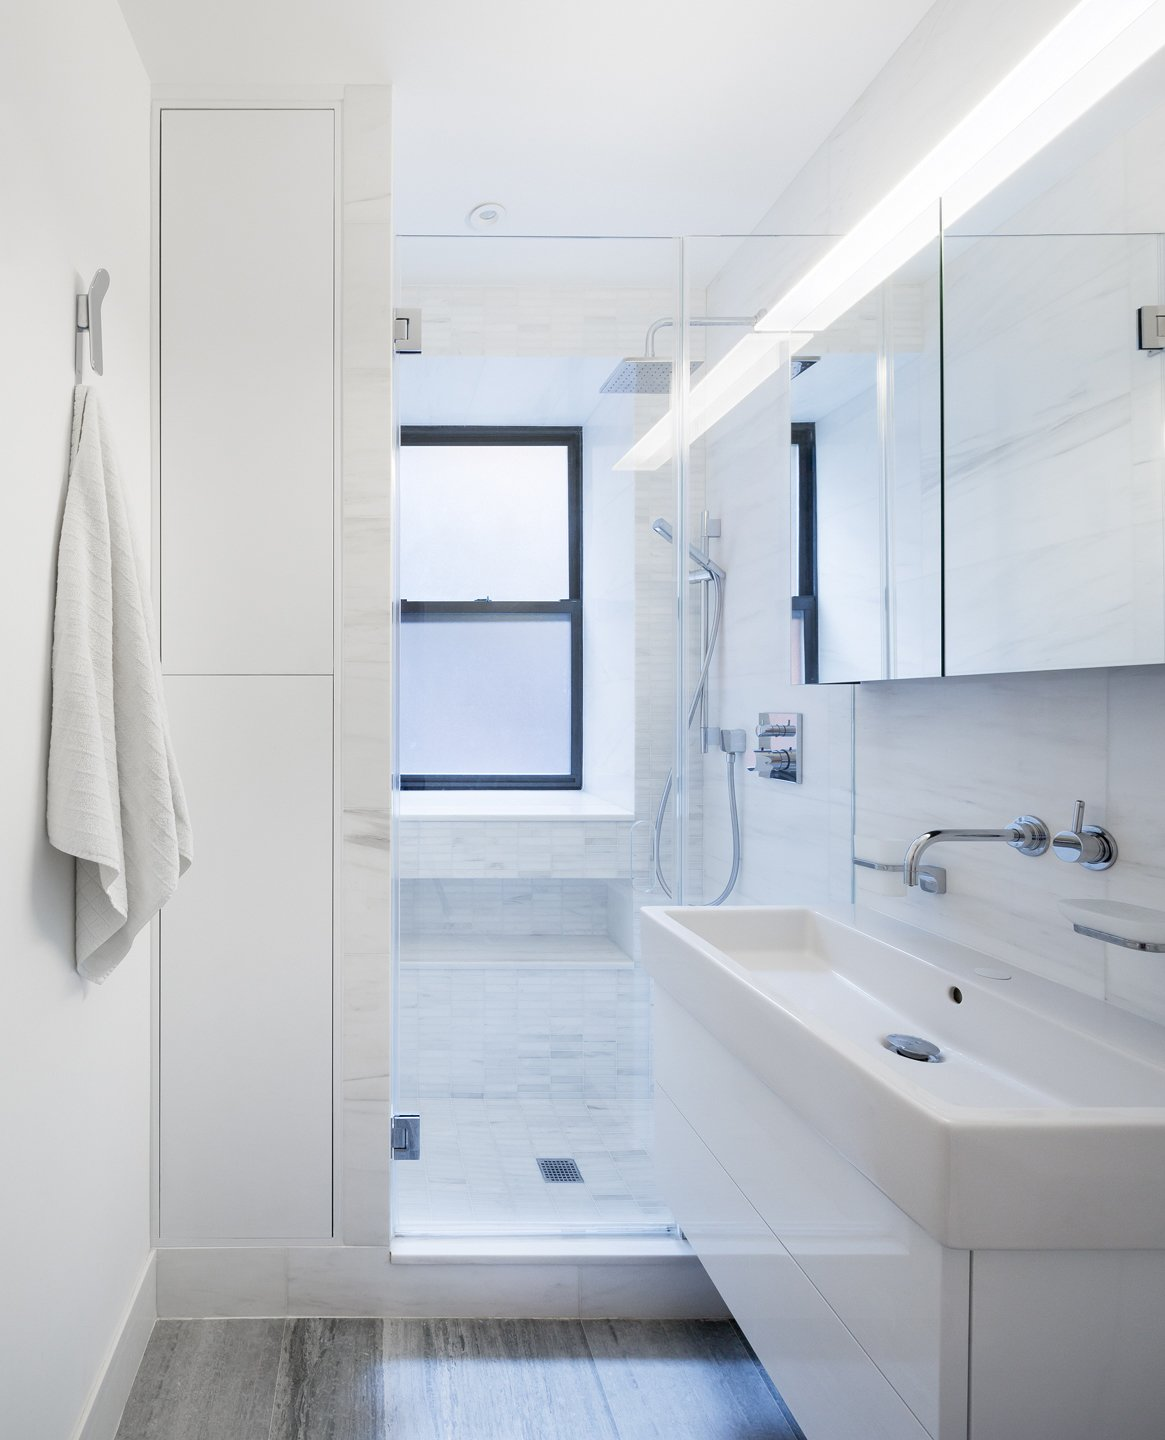 A wall mounted vanity,  glass enclosed shower and built in cabinets seek to maximizes the feeling of space within a very tight footprint.  Prewar Modern Upgrade by kane architecture and urban design